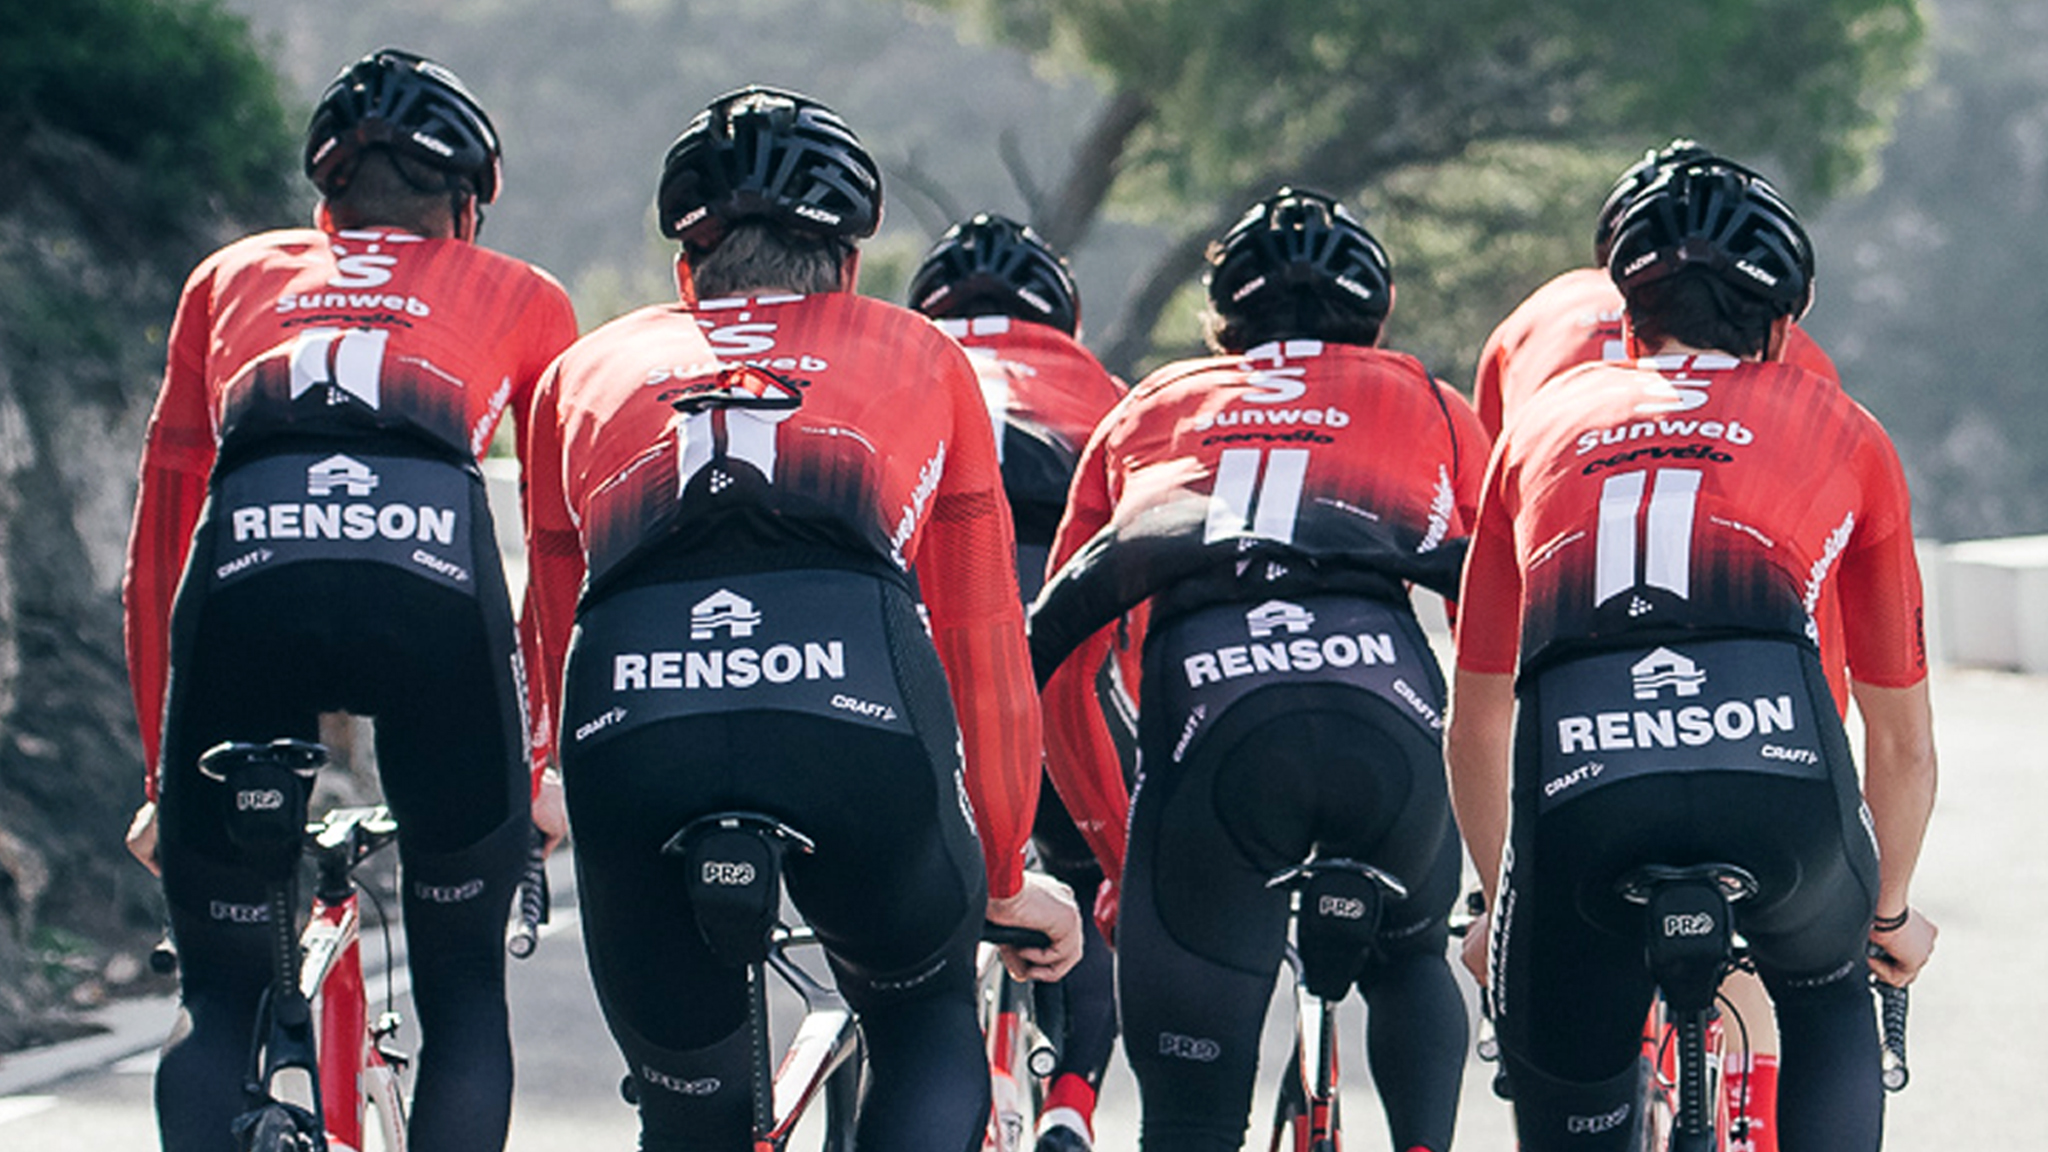 VRA181211161_Sunweb_Calpe_6074 Photo Credit © Team Sunweb.jpg